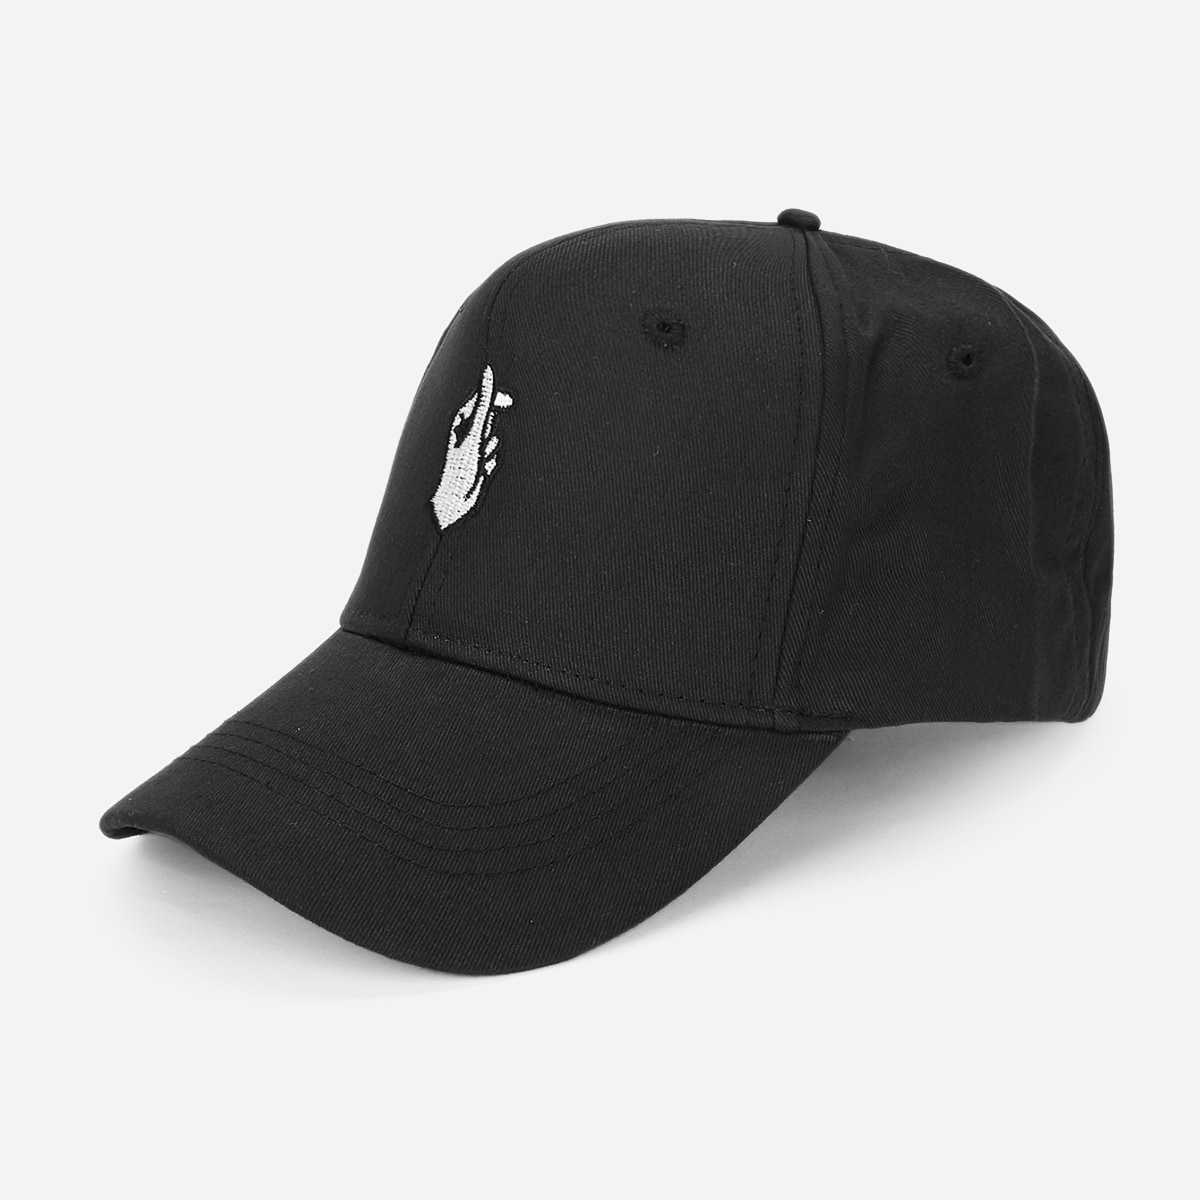 Guys Gesture Embroidery Baseball Cap in Black by ROMWE on GOOFASH